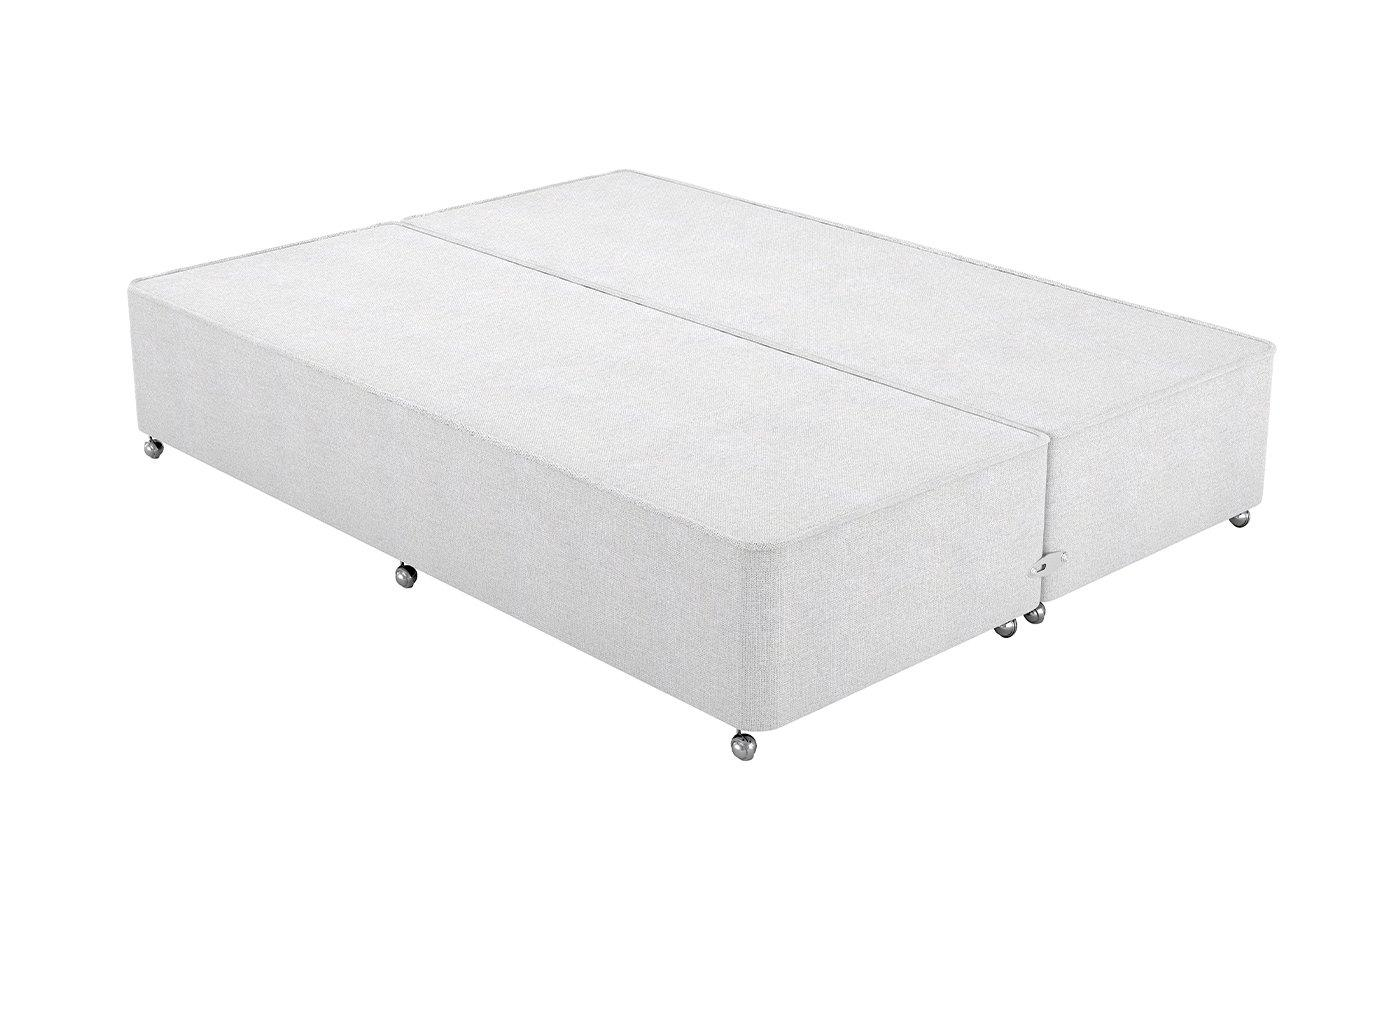 Contract Divan Base Small Double 4'0 Small double SILVER